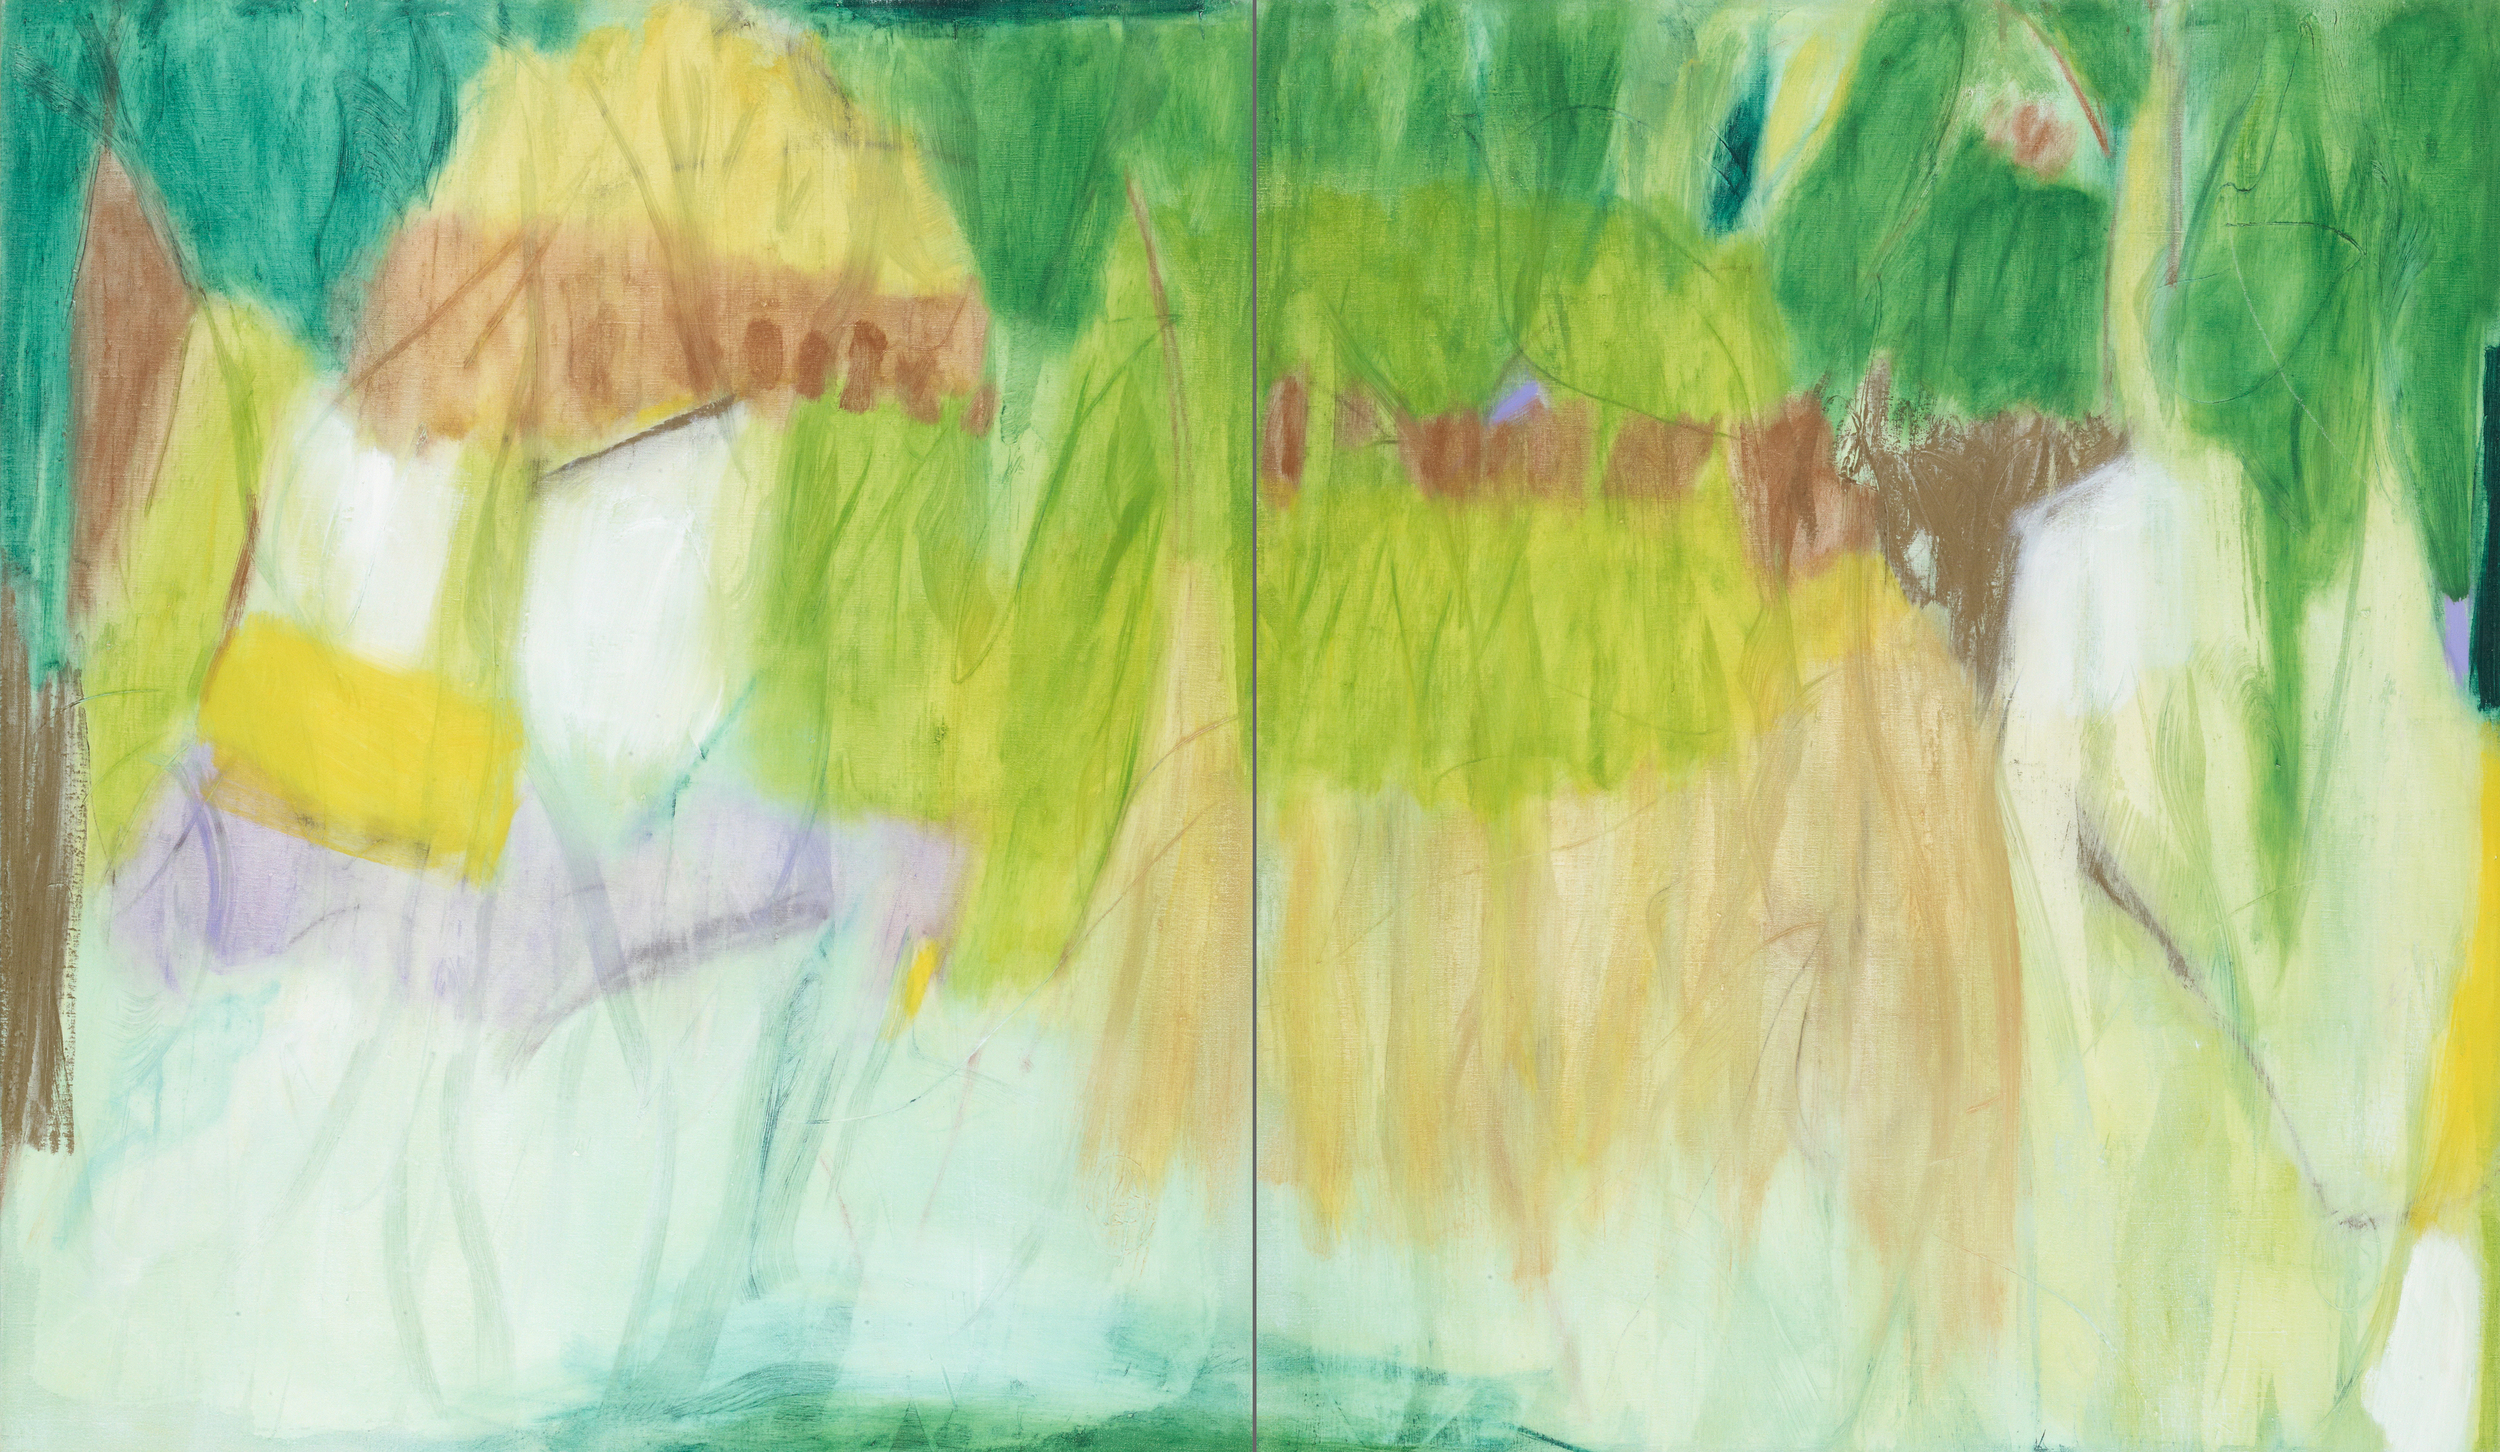 Abstract Impression I (diptych)